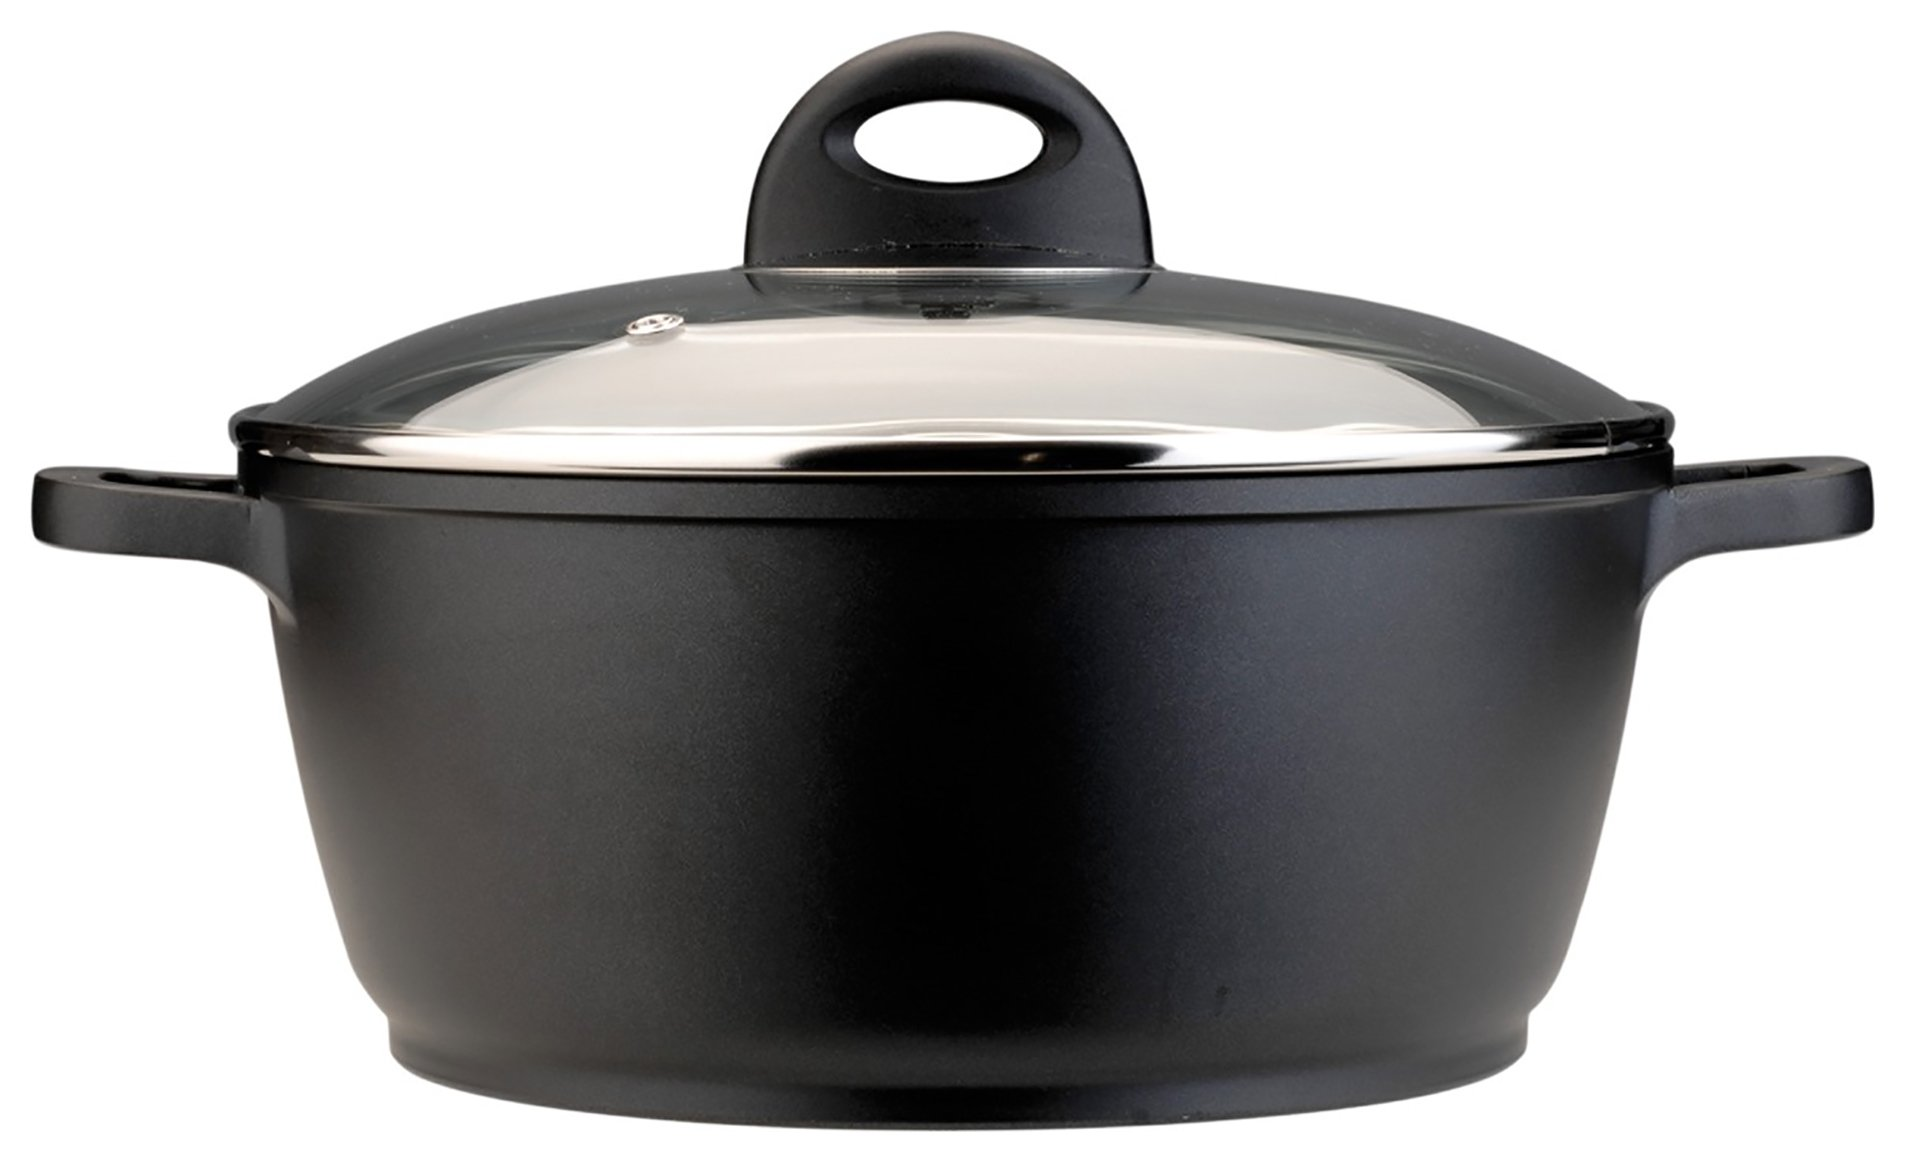 Image of BergHOFF 28cm Aluminium Covered Stockpot.